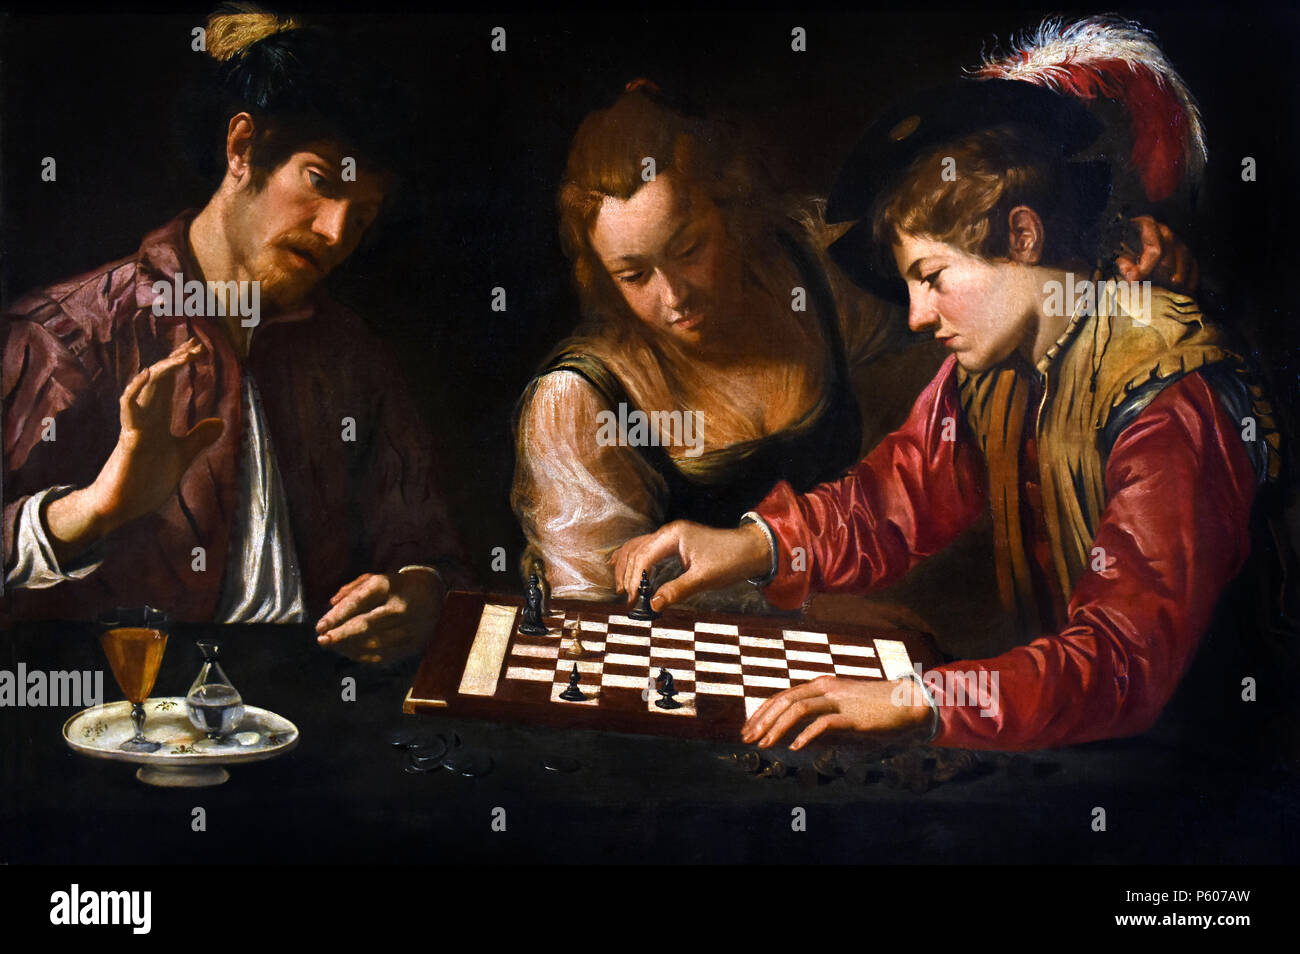 Chess player, CARAVAGGESCO ,PAINTER, Italy, Italian ( Painted in the style of Michelangelo Merisi da Caravaggio. Specifically, this means a highly realistic portrayal of figures, the focus on dramatic situations and subjects, and a high contrast of light and dark (chiaroscuro). 16-17th Century - Stock Image